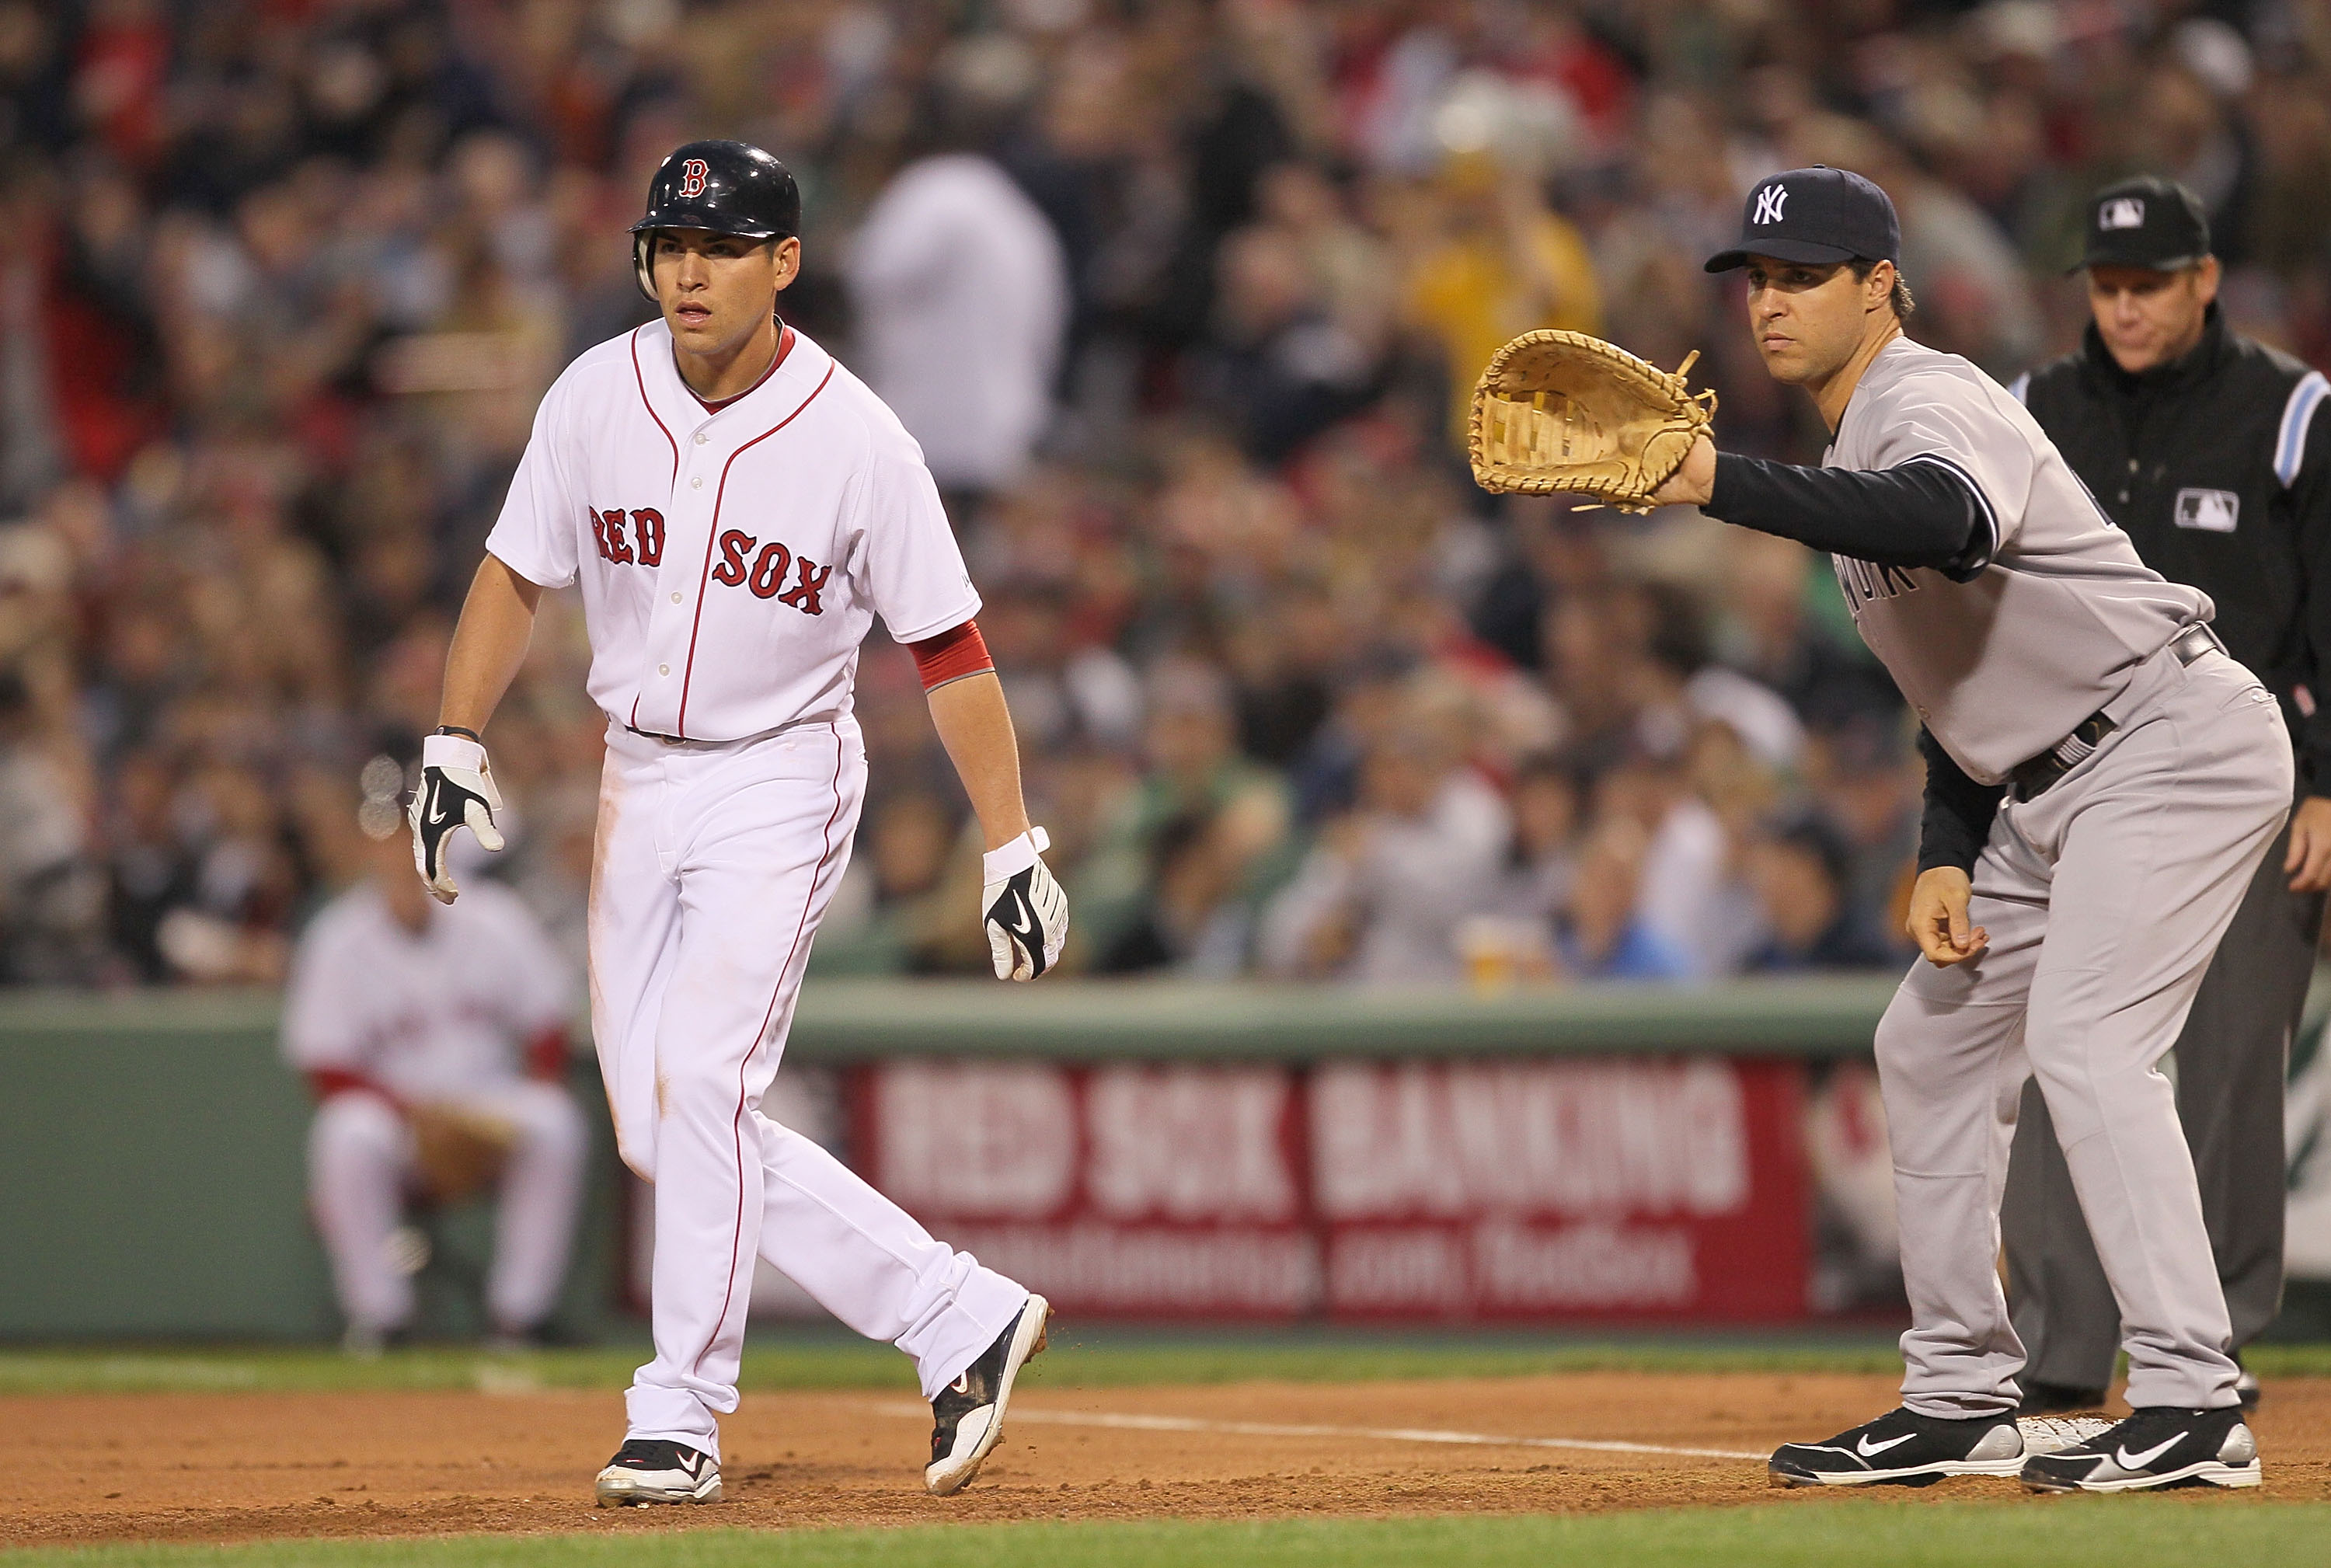 BOSTON - APRIL 06:  Jacoby Ellsbury #2 leads away from Mark Teixeira #25 of the New York Yankees at Fenway Park on April 6, 2010 in Boston, Massachusetts. (Photo by Jim Rogash/Getty Images)